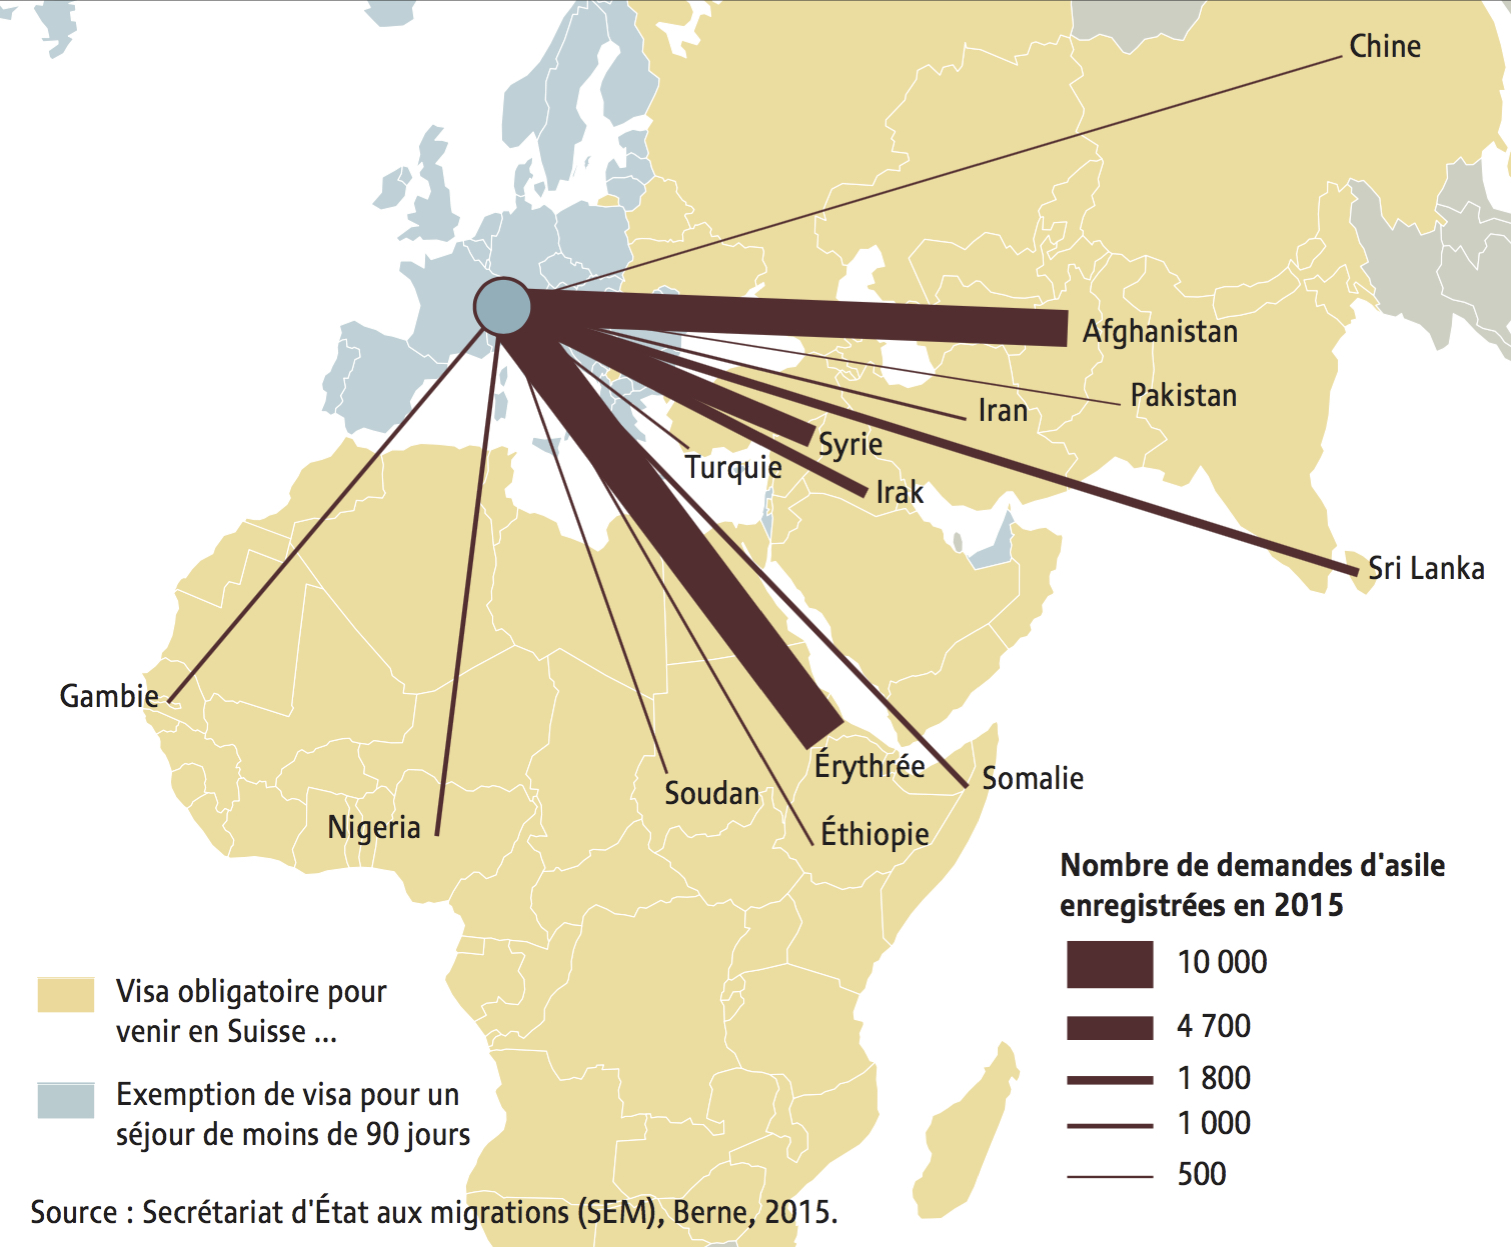 Carte demandes d'asile 2015 - obligation de visas